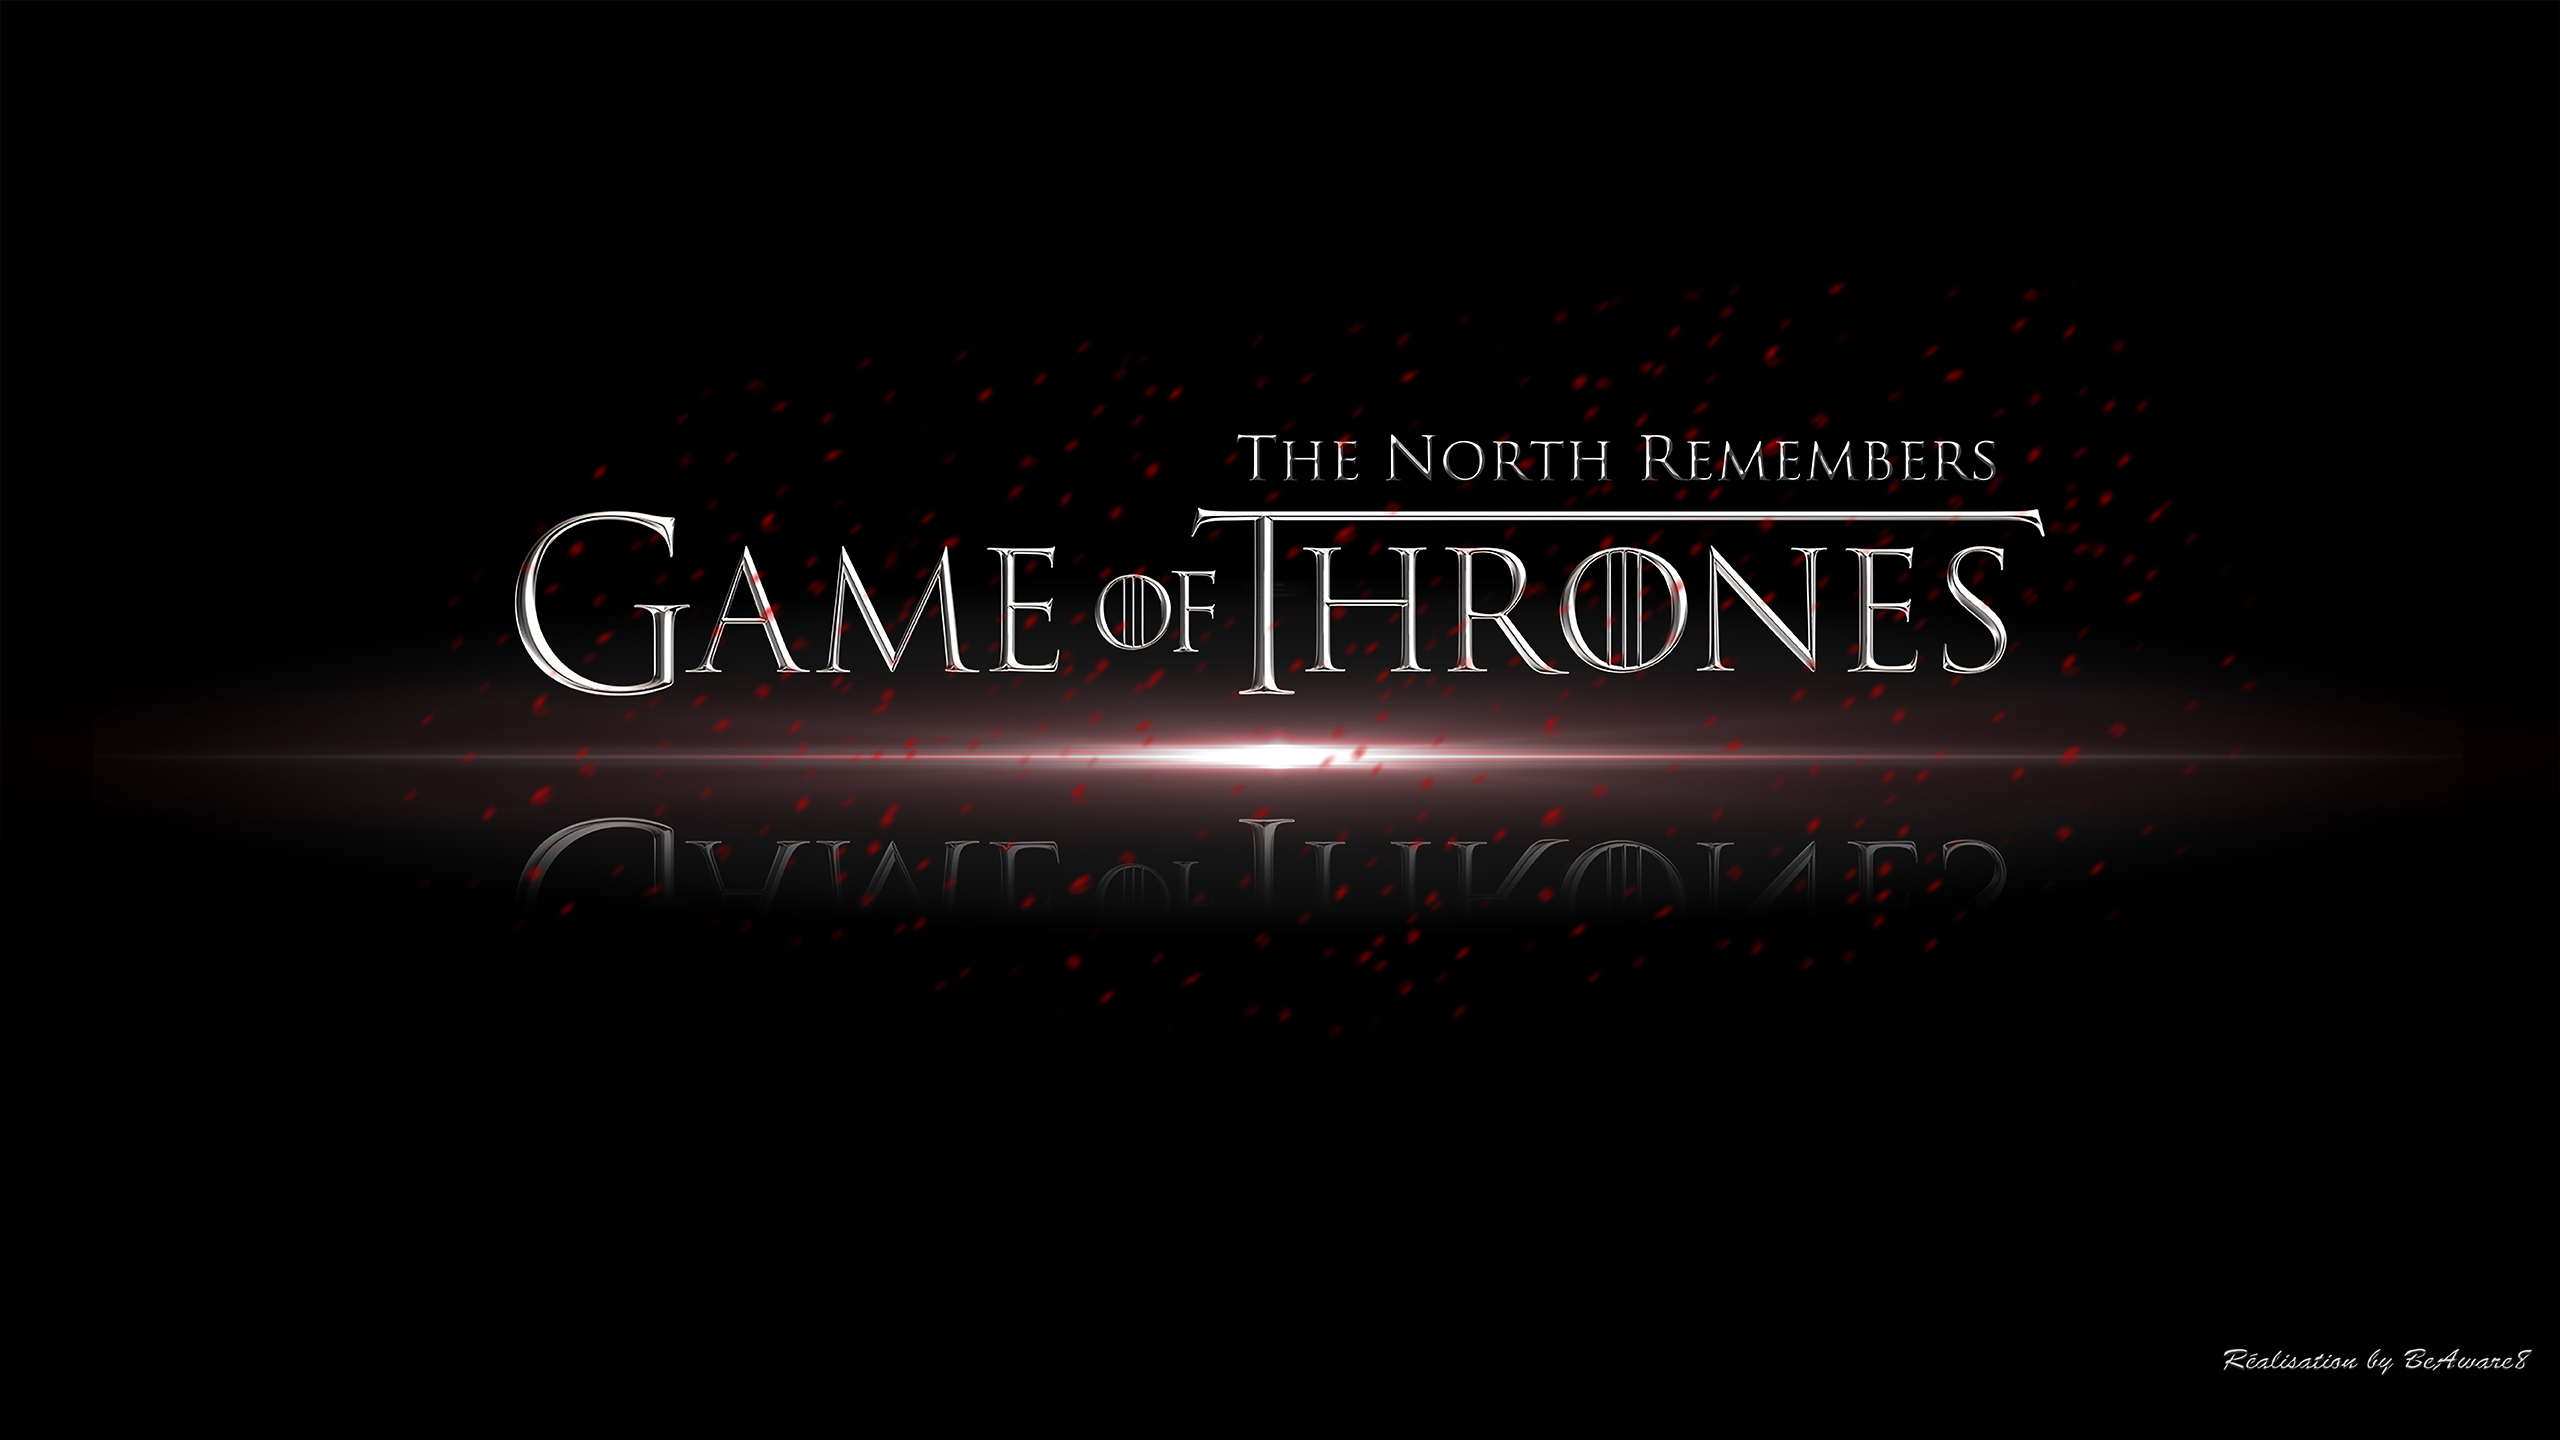 The North Remembers Wallpaper 2560x1440